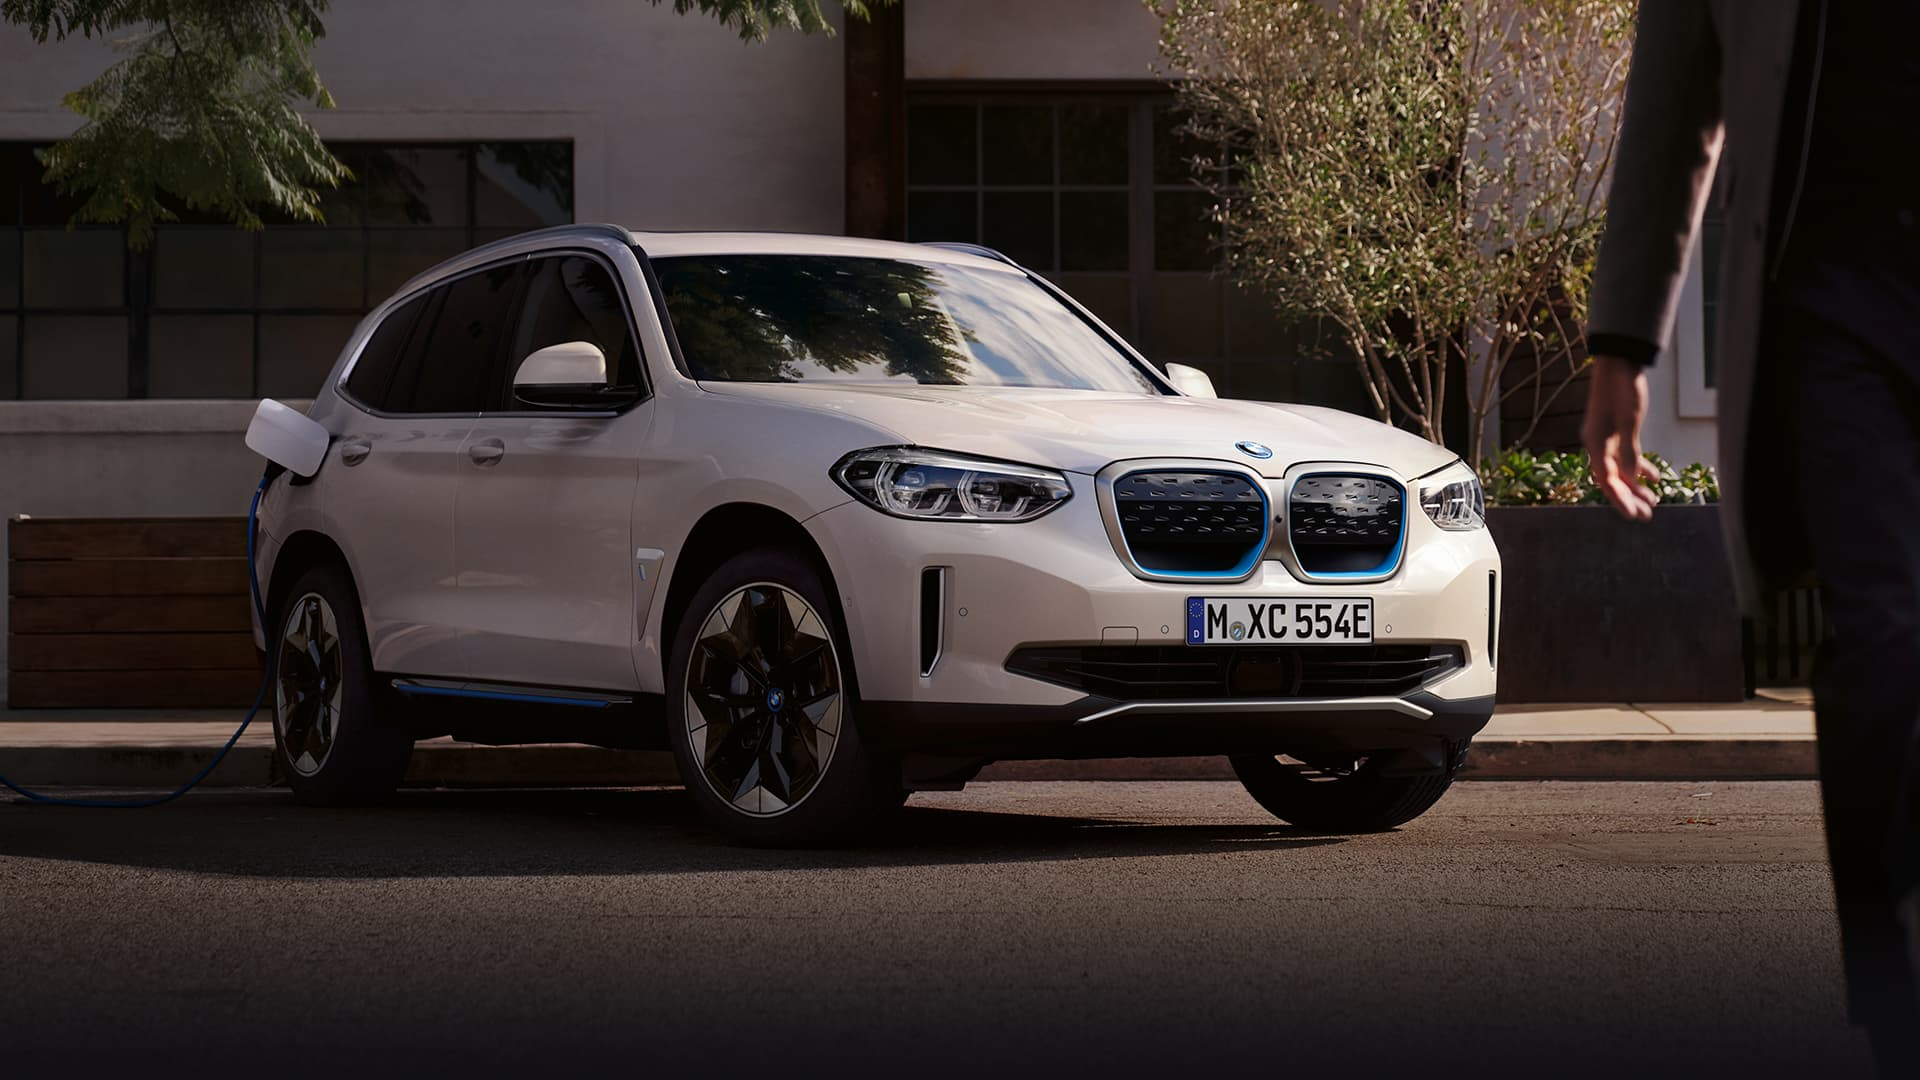 Service And Instructions For Bmw Charging Products Bmw Com